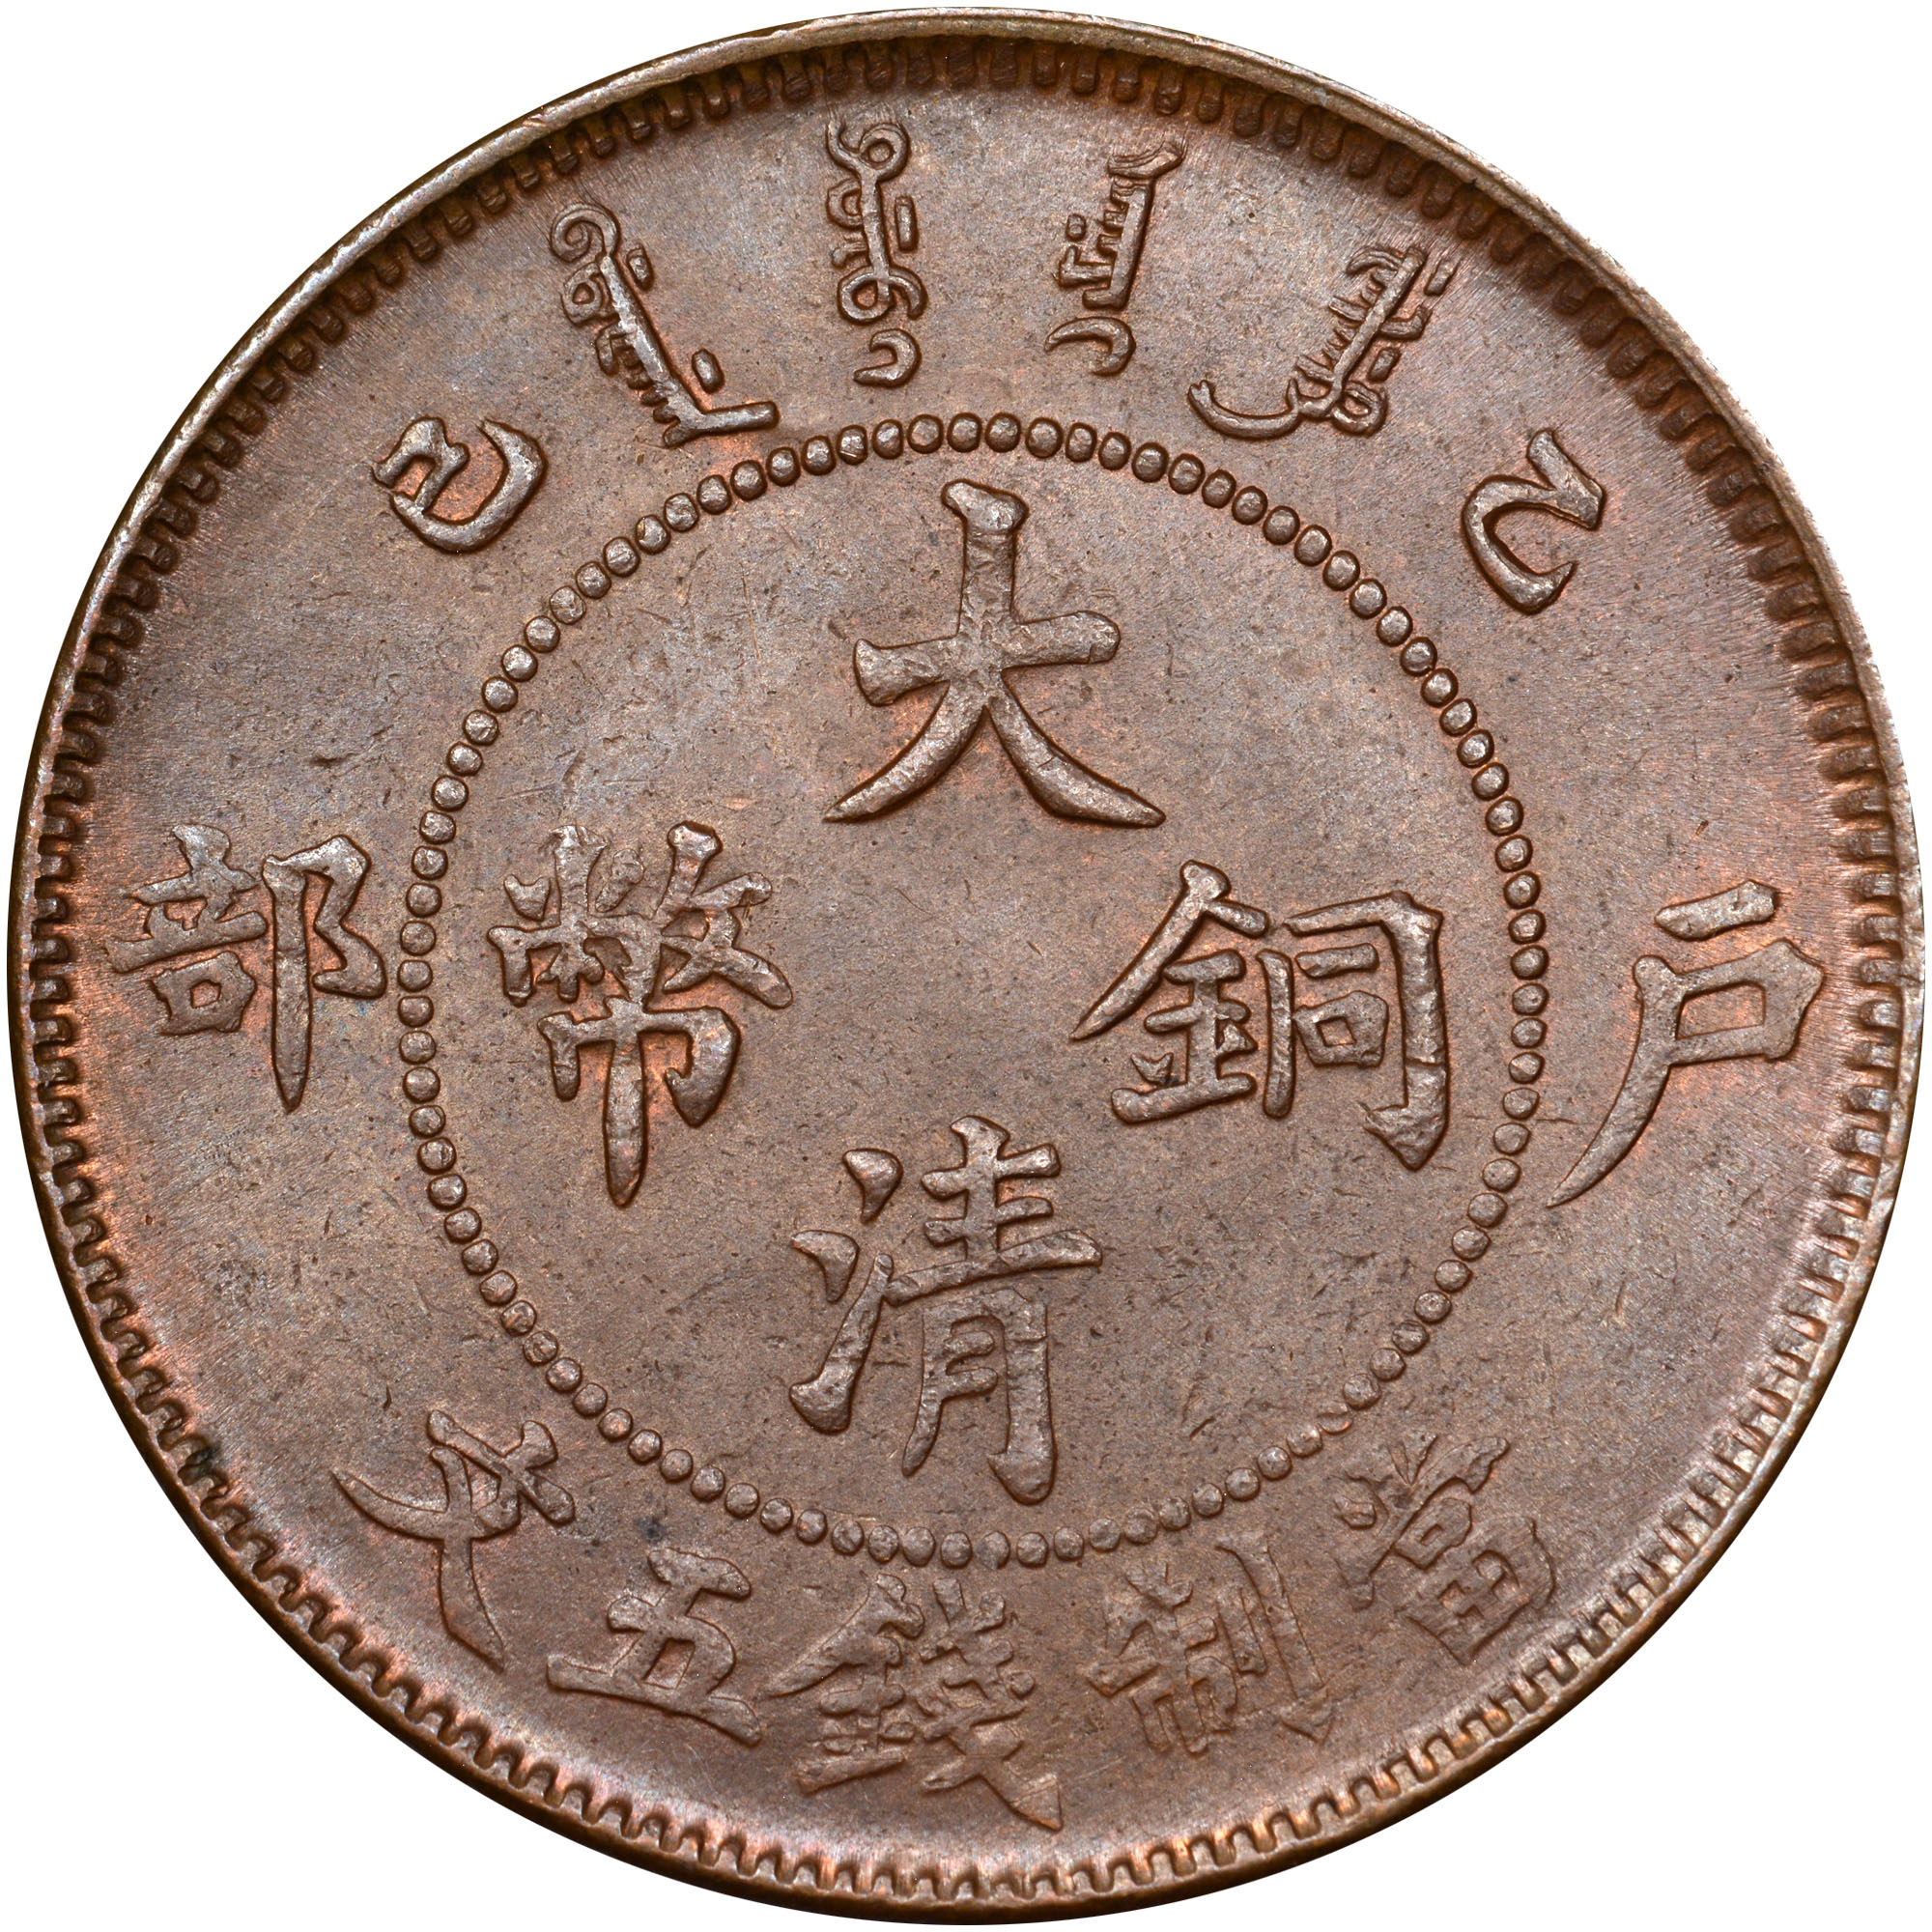 1905-1906 China EMPIRE 5 Cash obverse